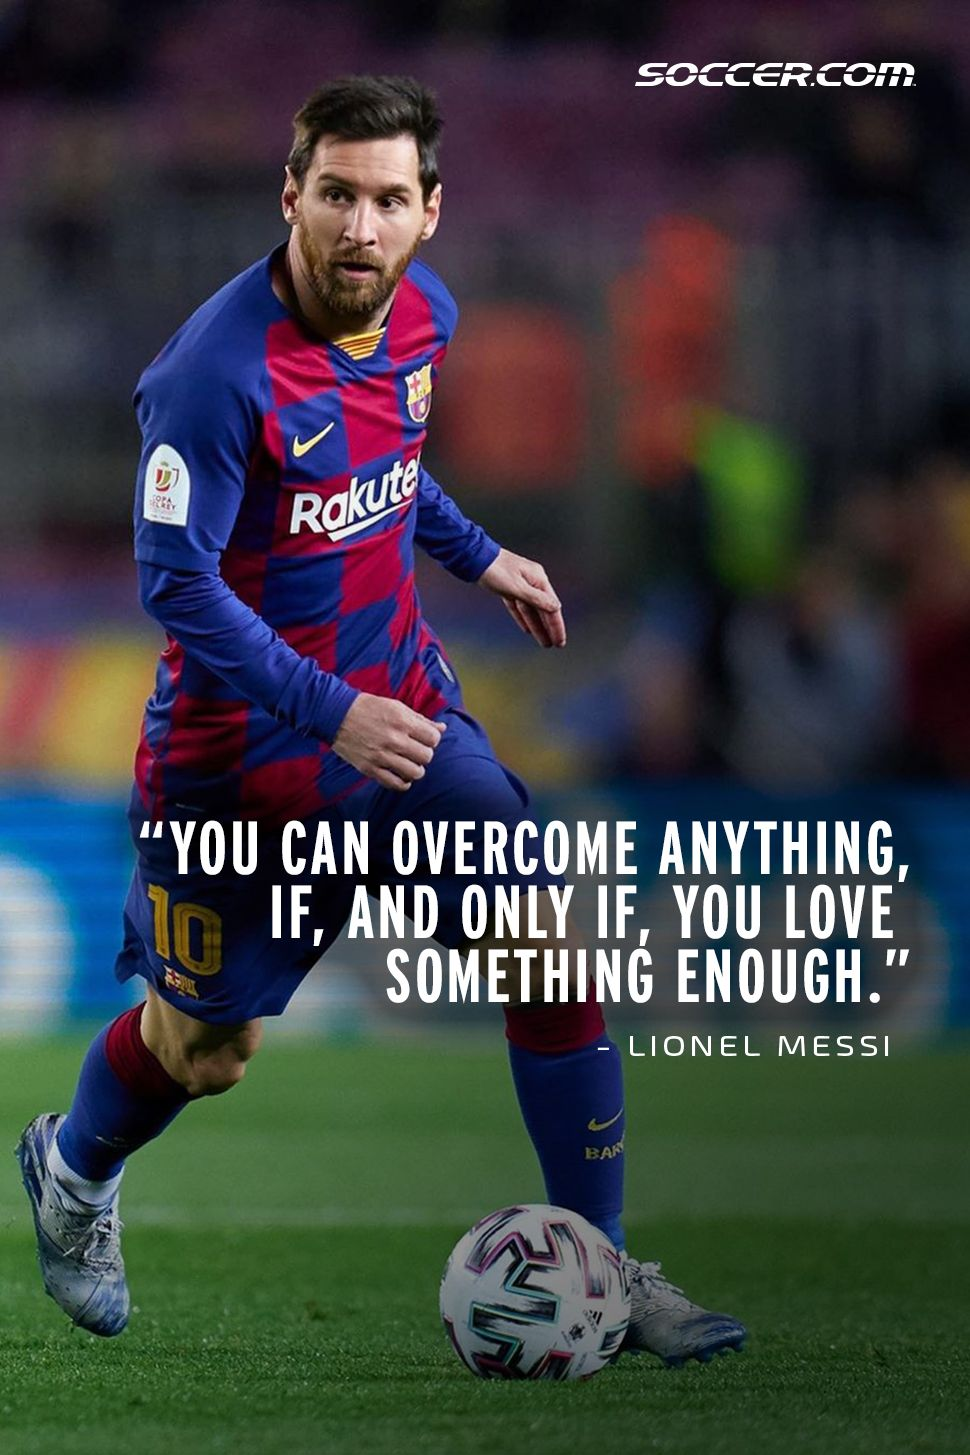 Best Inspirational Soccer Quotes Soccer Com In 2020 Inspirational Soccer Quotes Lionel Messi Motivational Soccer Quotes